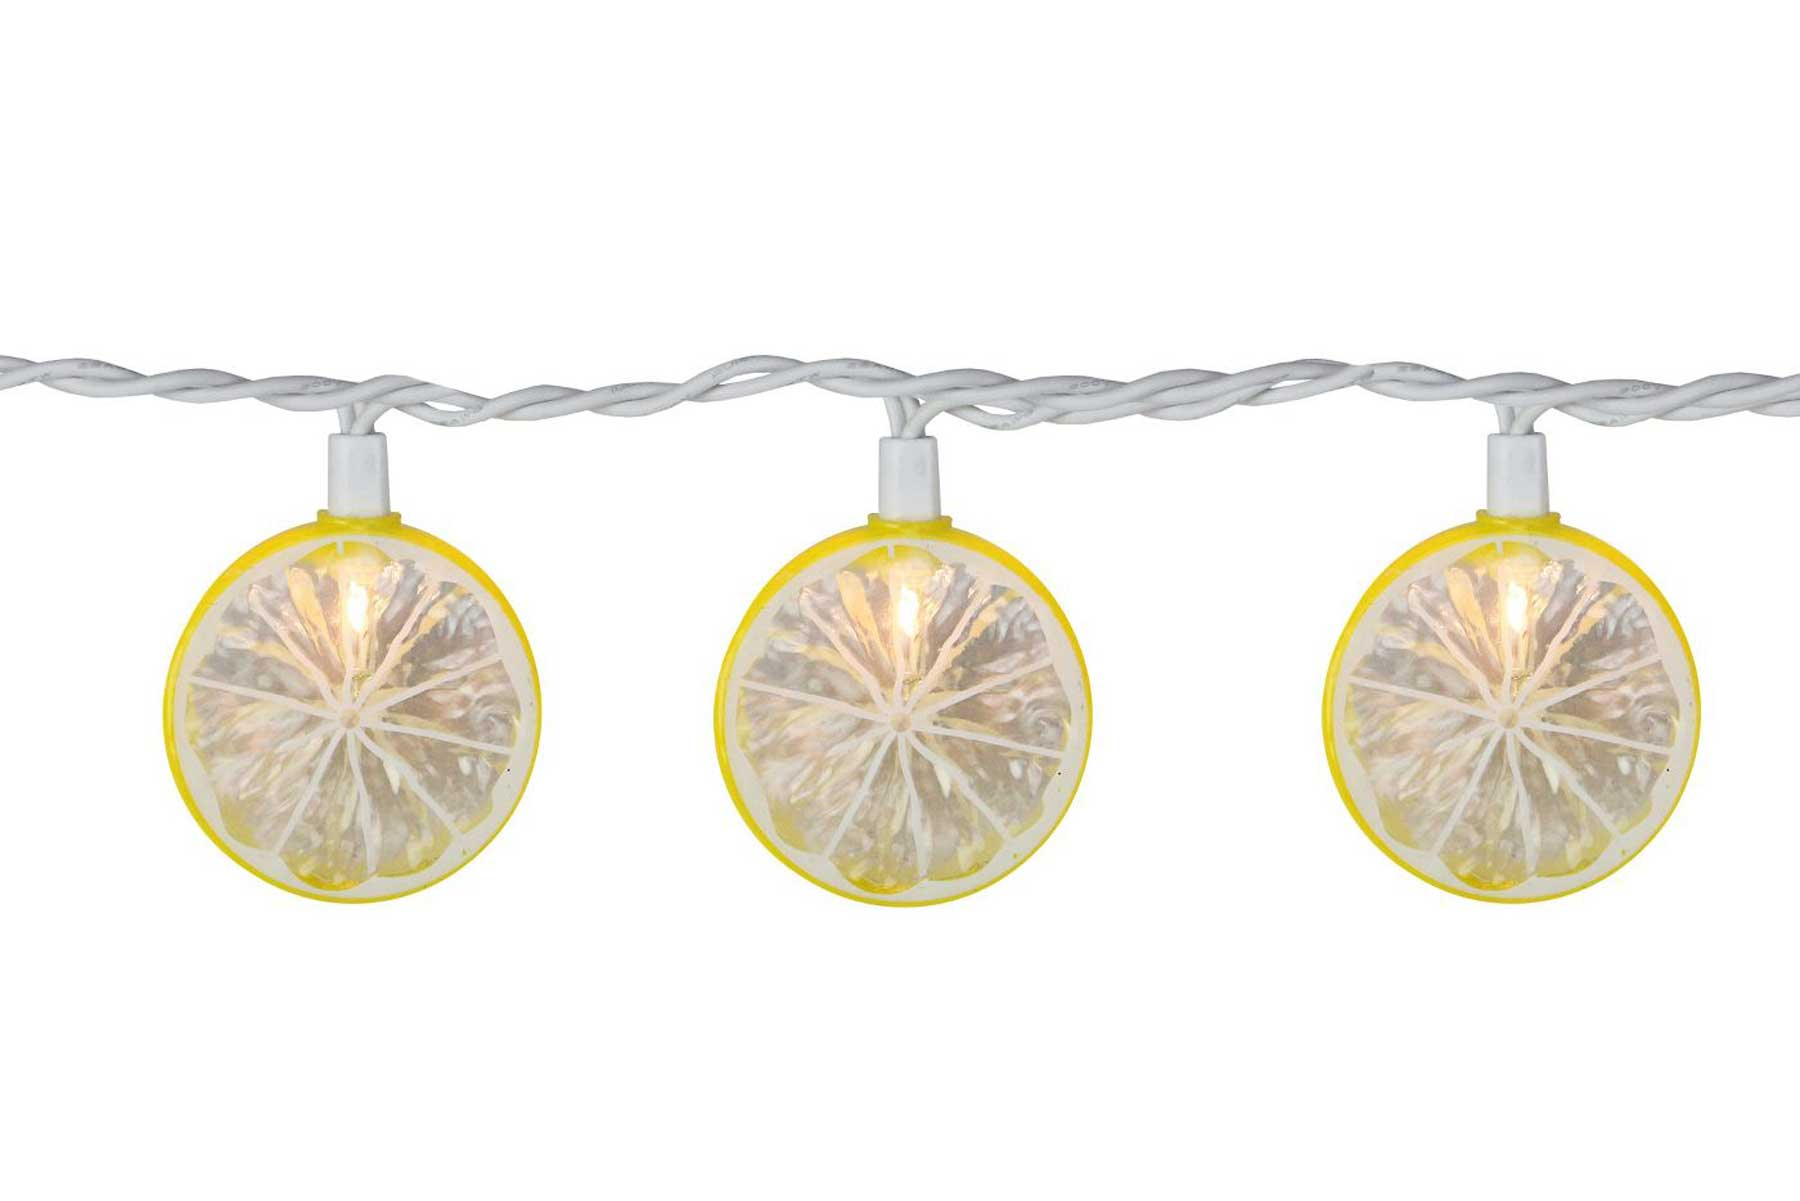 Dennis East mini lemon string lights